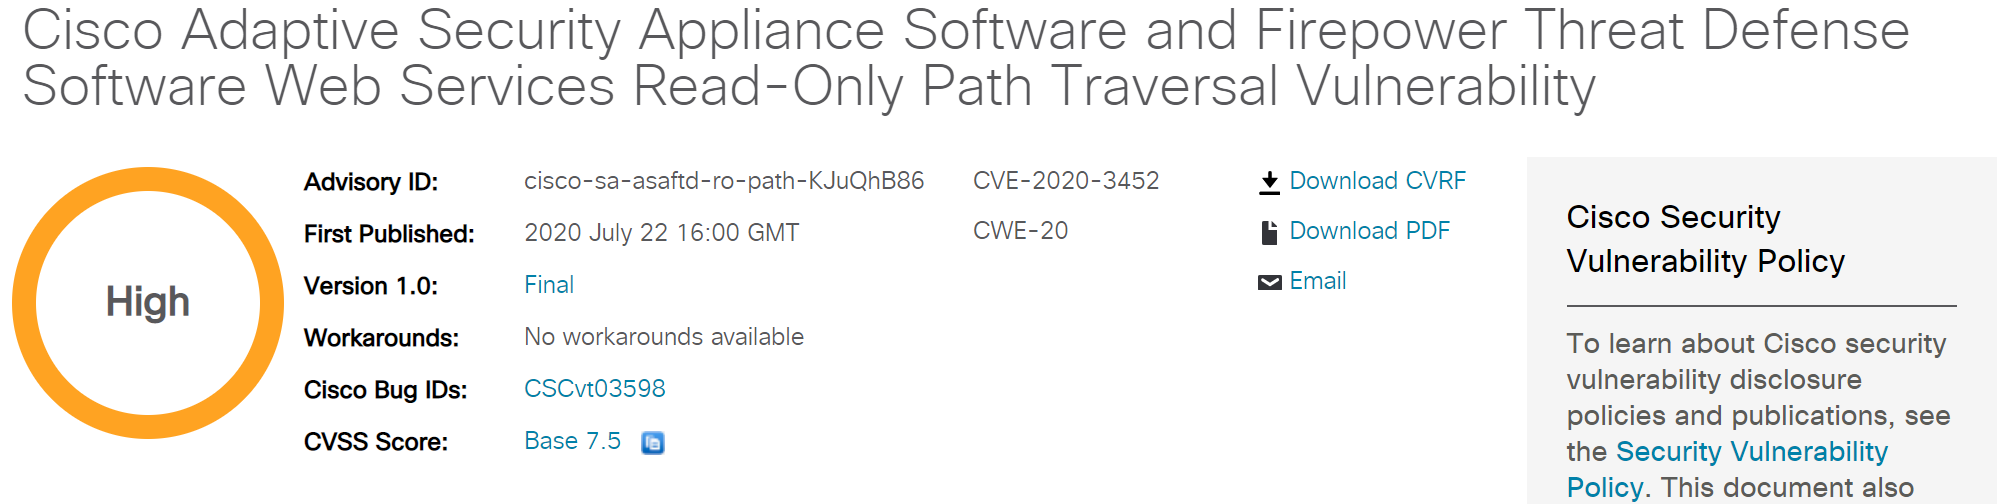 CVE-2020-3452: Cisco ASA/FTD Arbitrary File Reading Vulnerability Alert